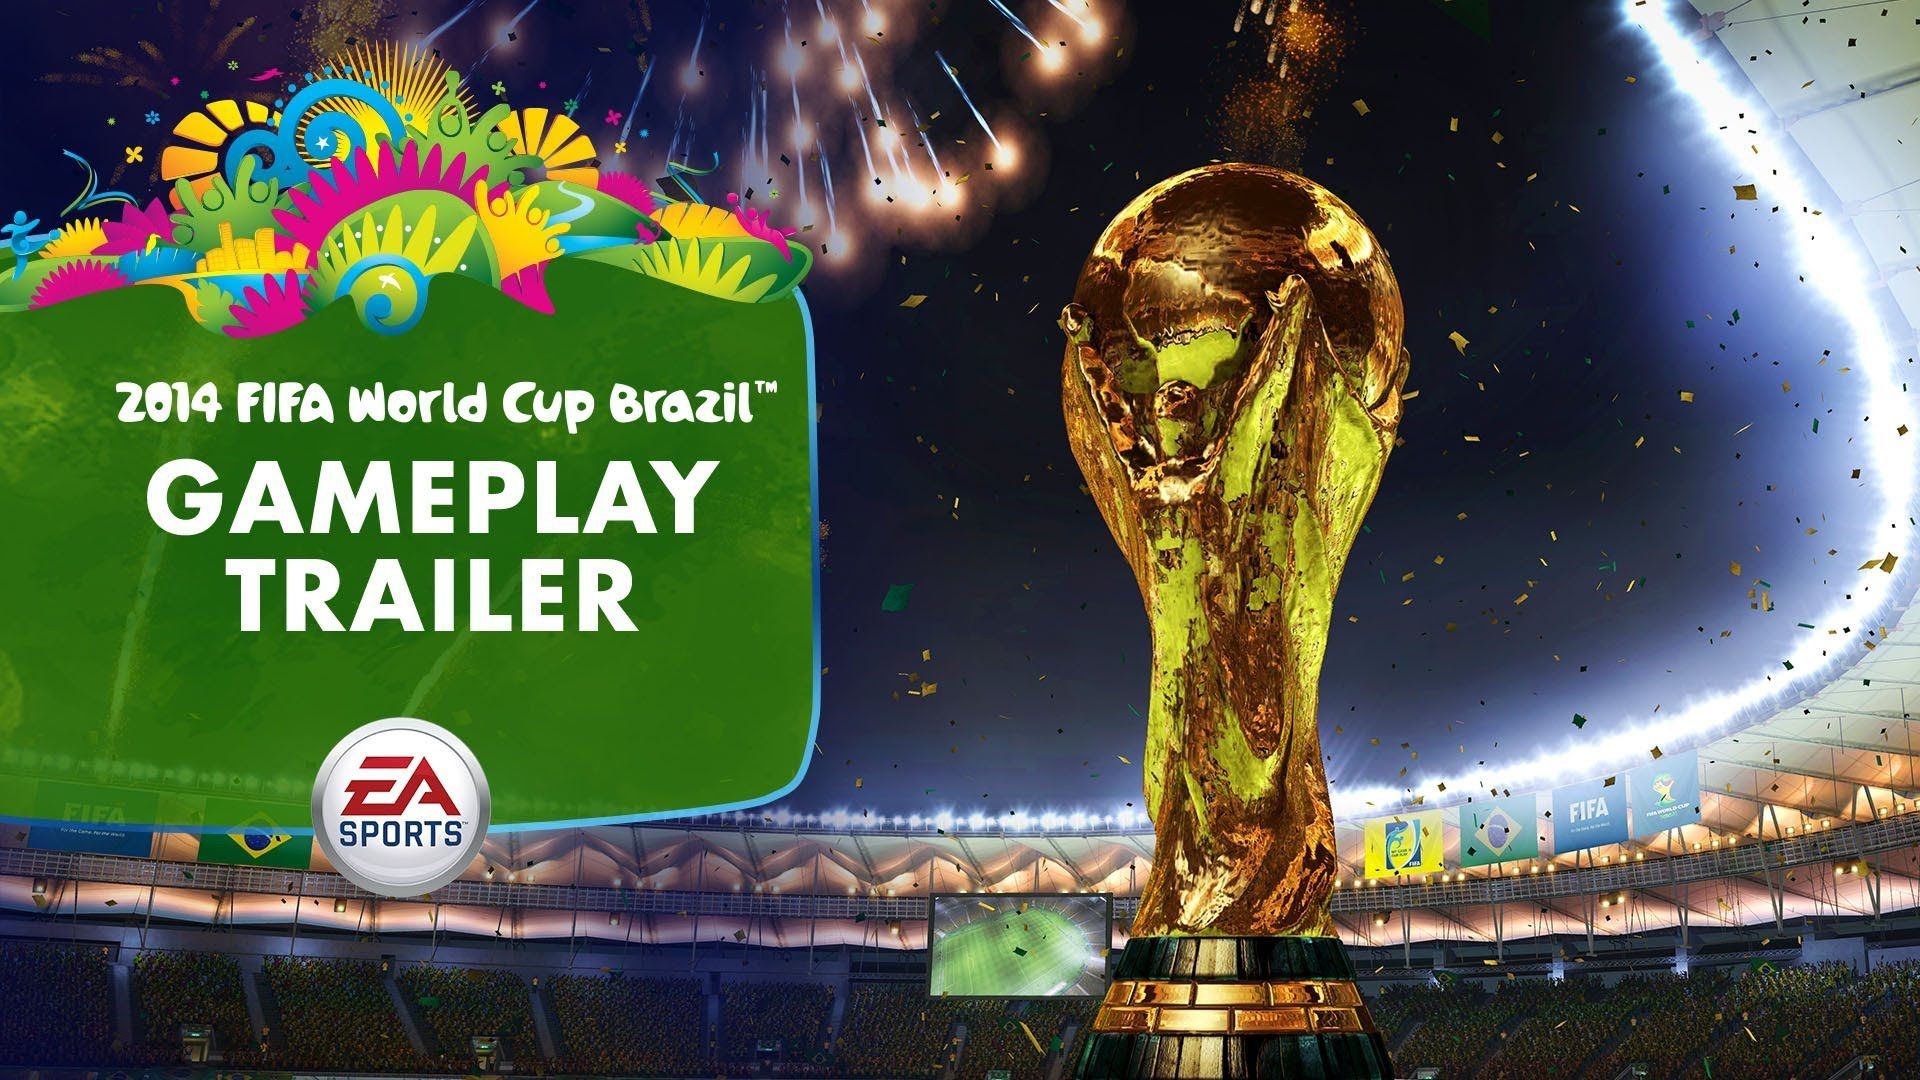 Ea Sports 2014 Fifa World Cup Gameplay Trailer Ea Fifa Fifa